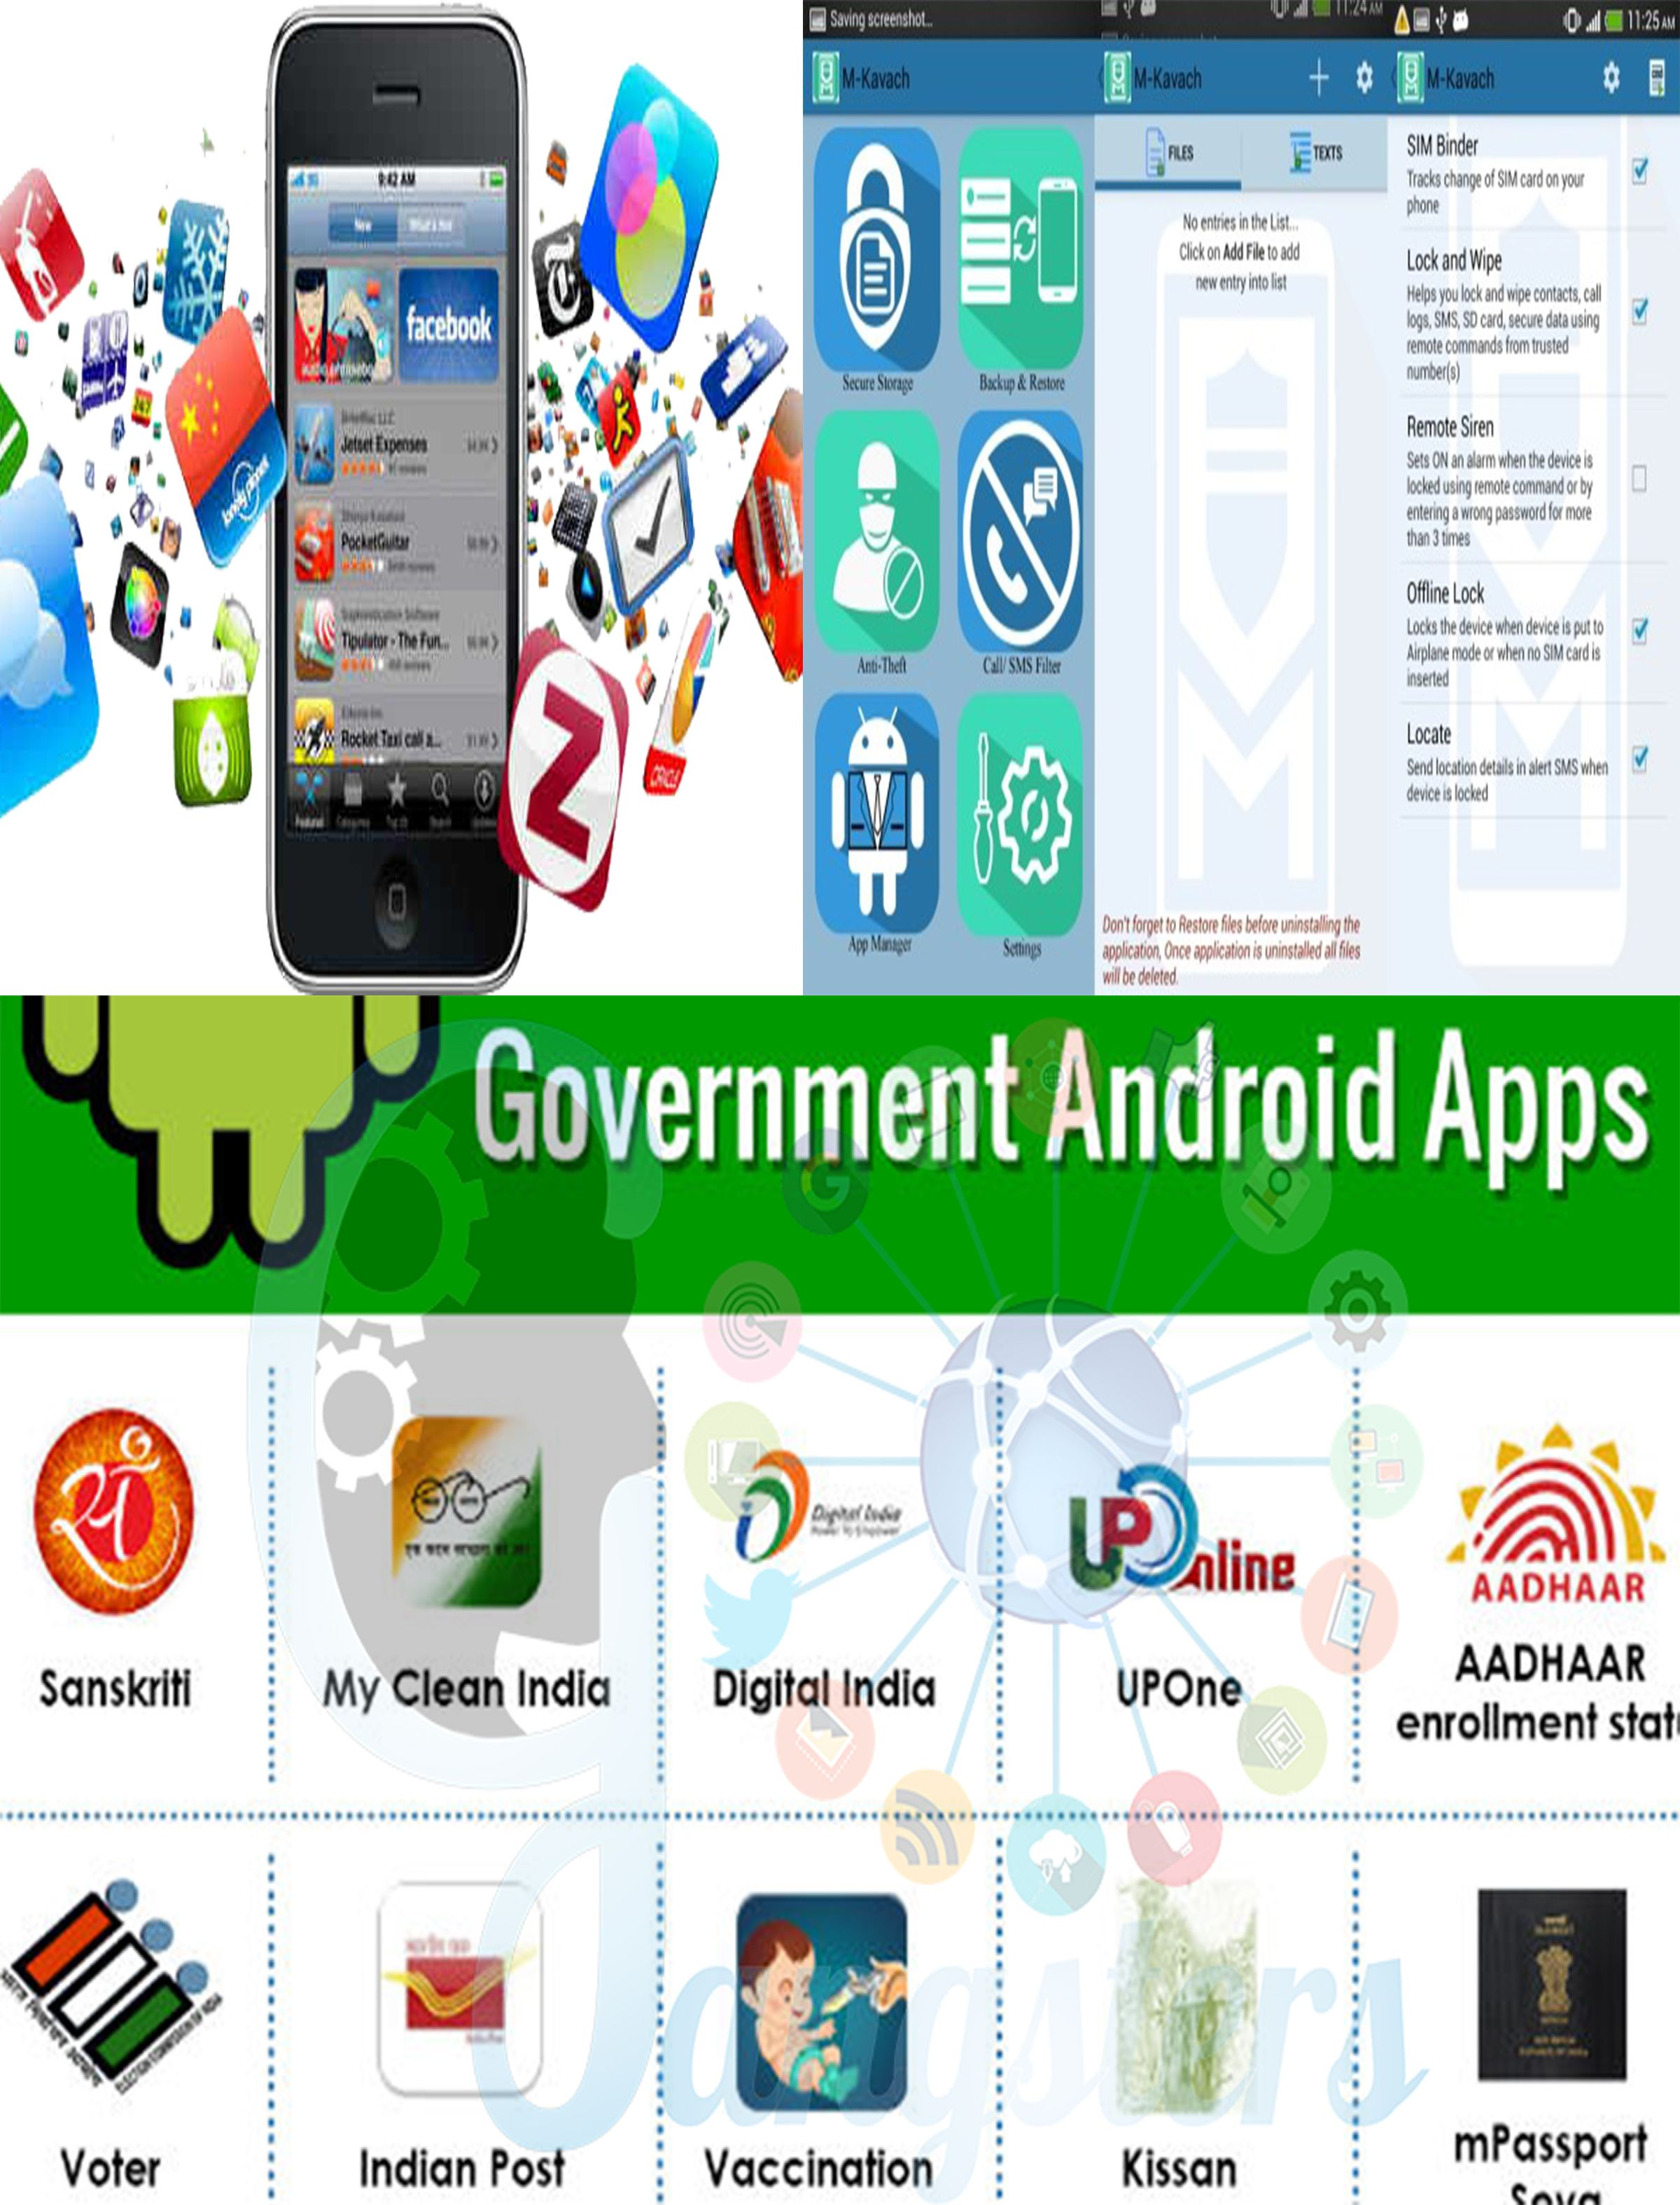 GovernmentApps DigitalIndia The government of Indi